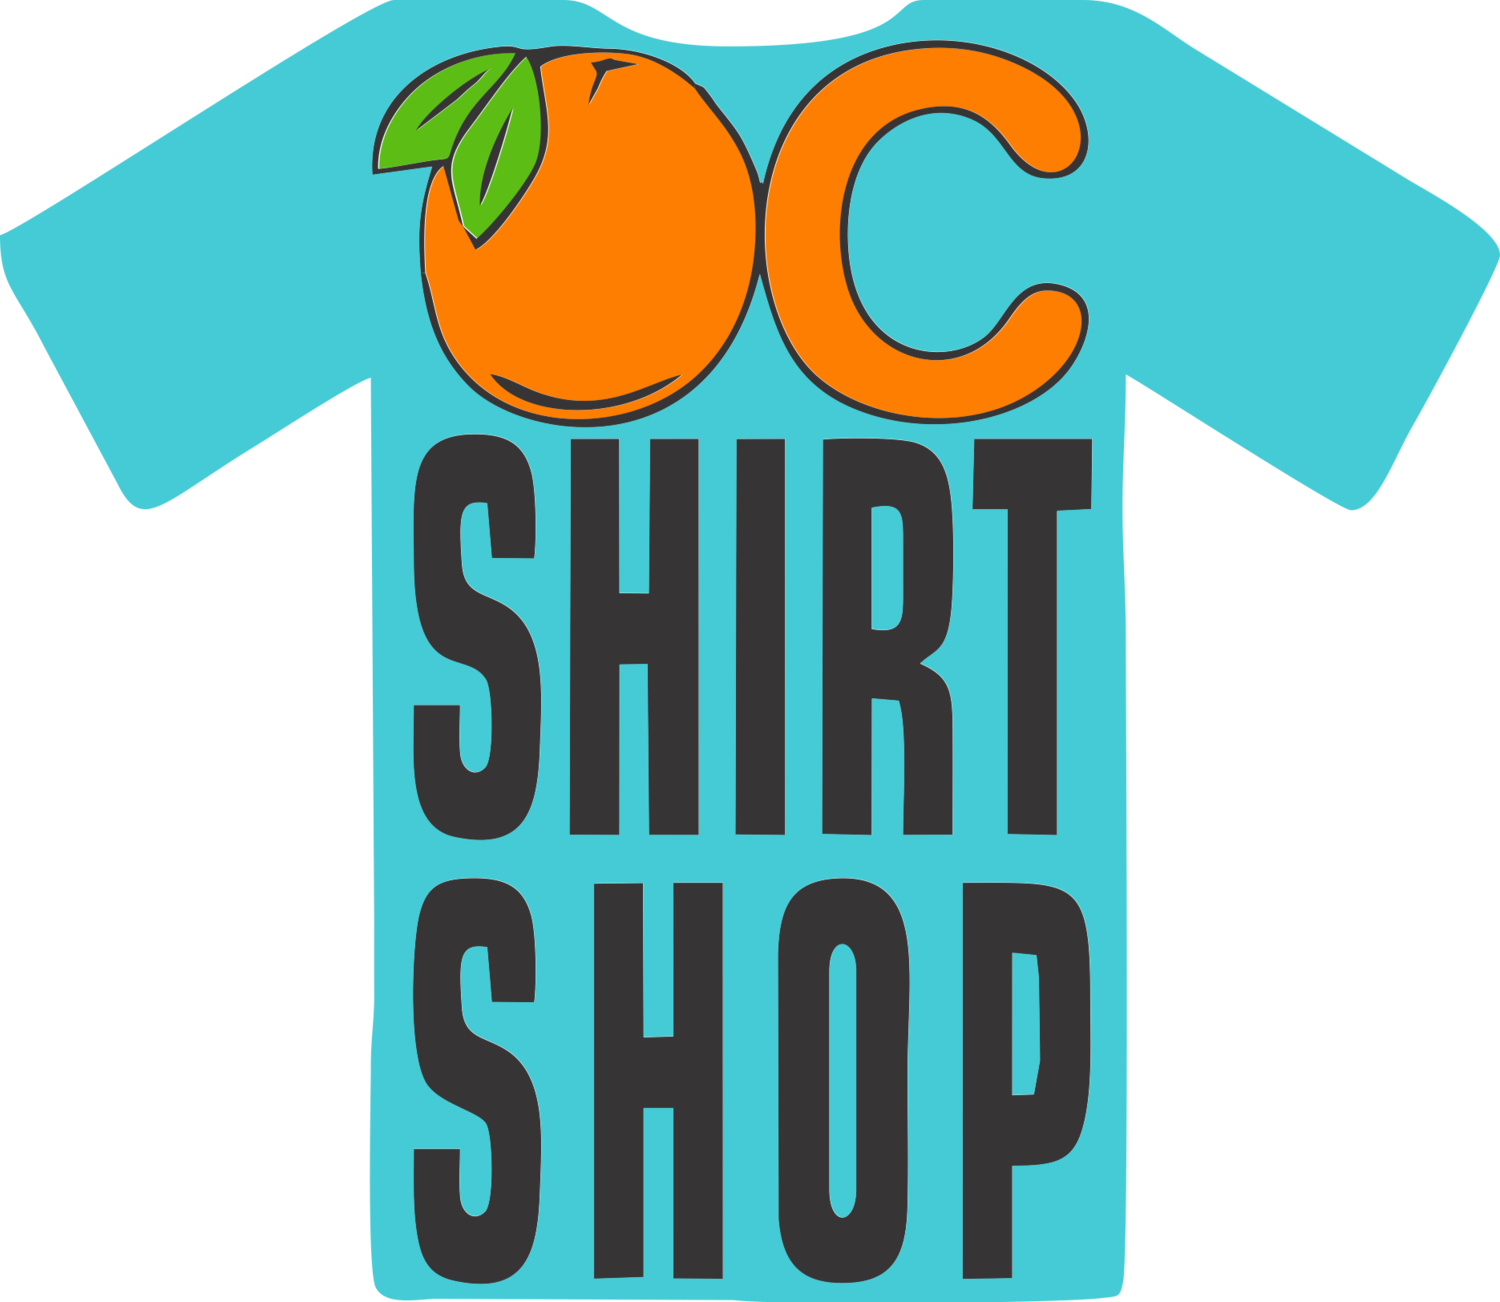 OC Shirt Shop